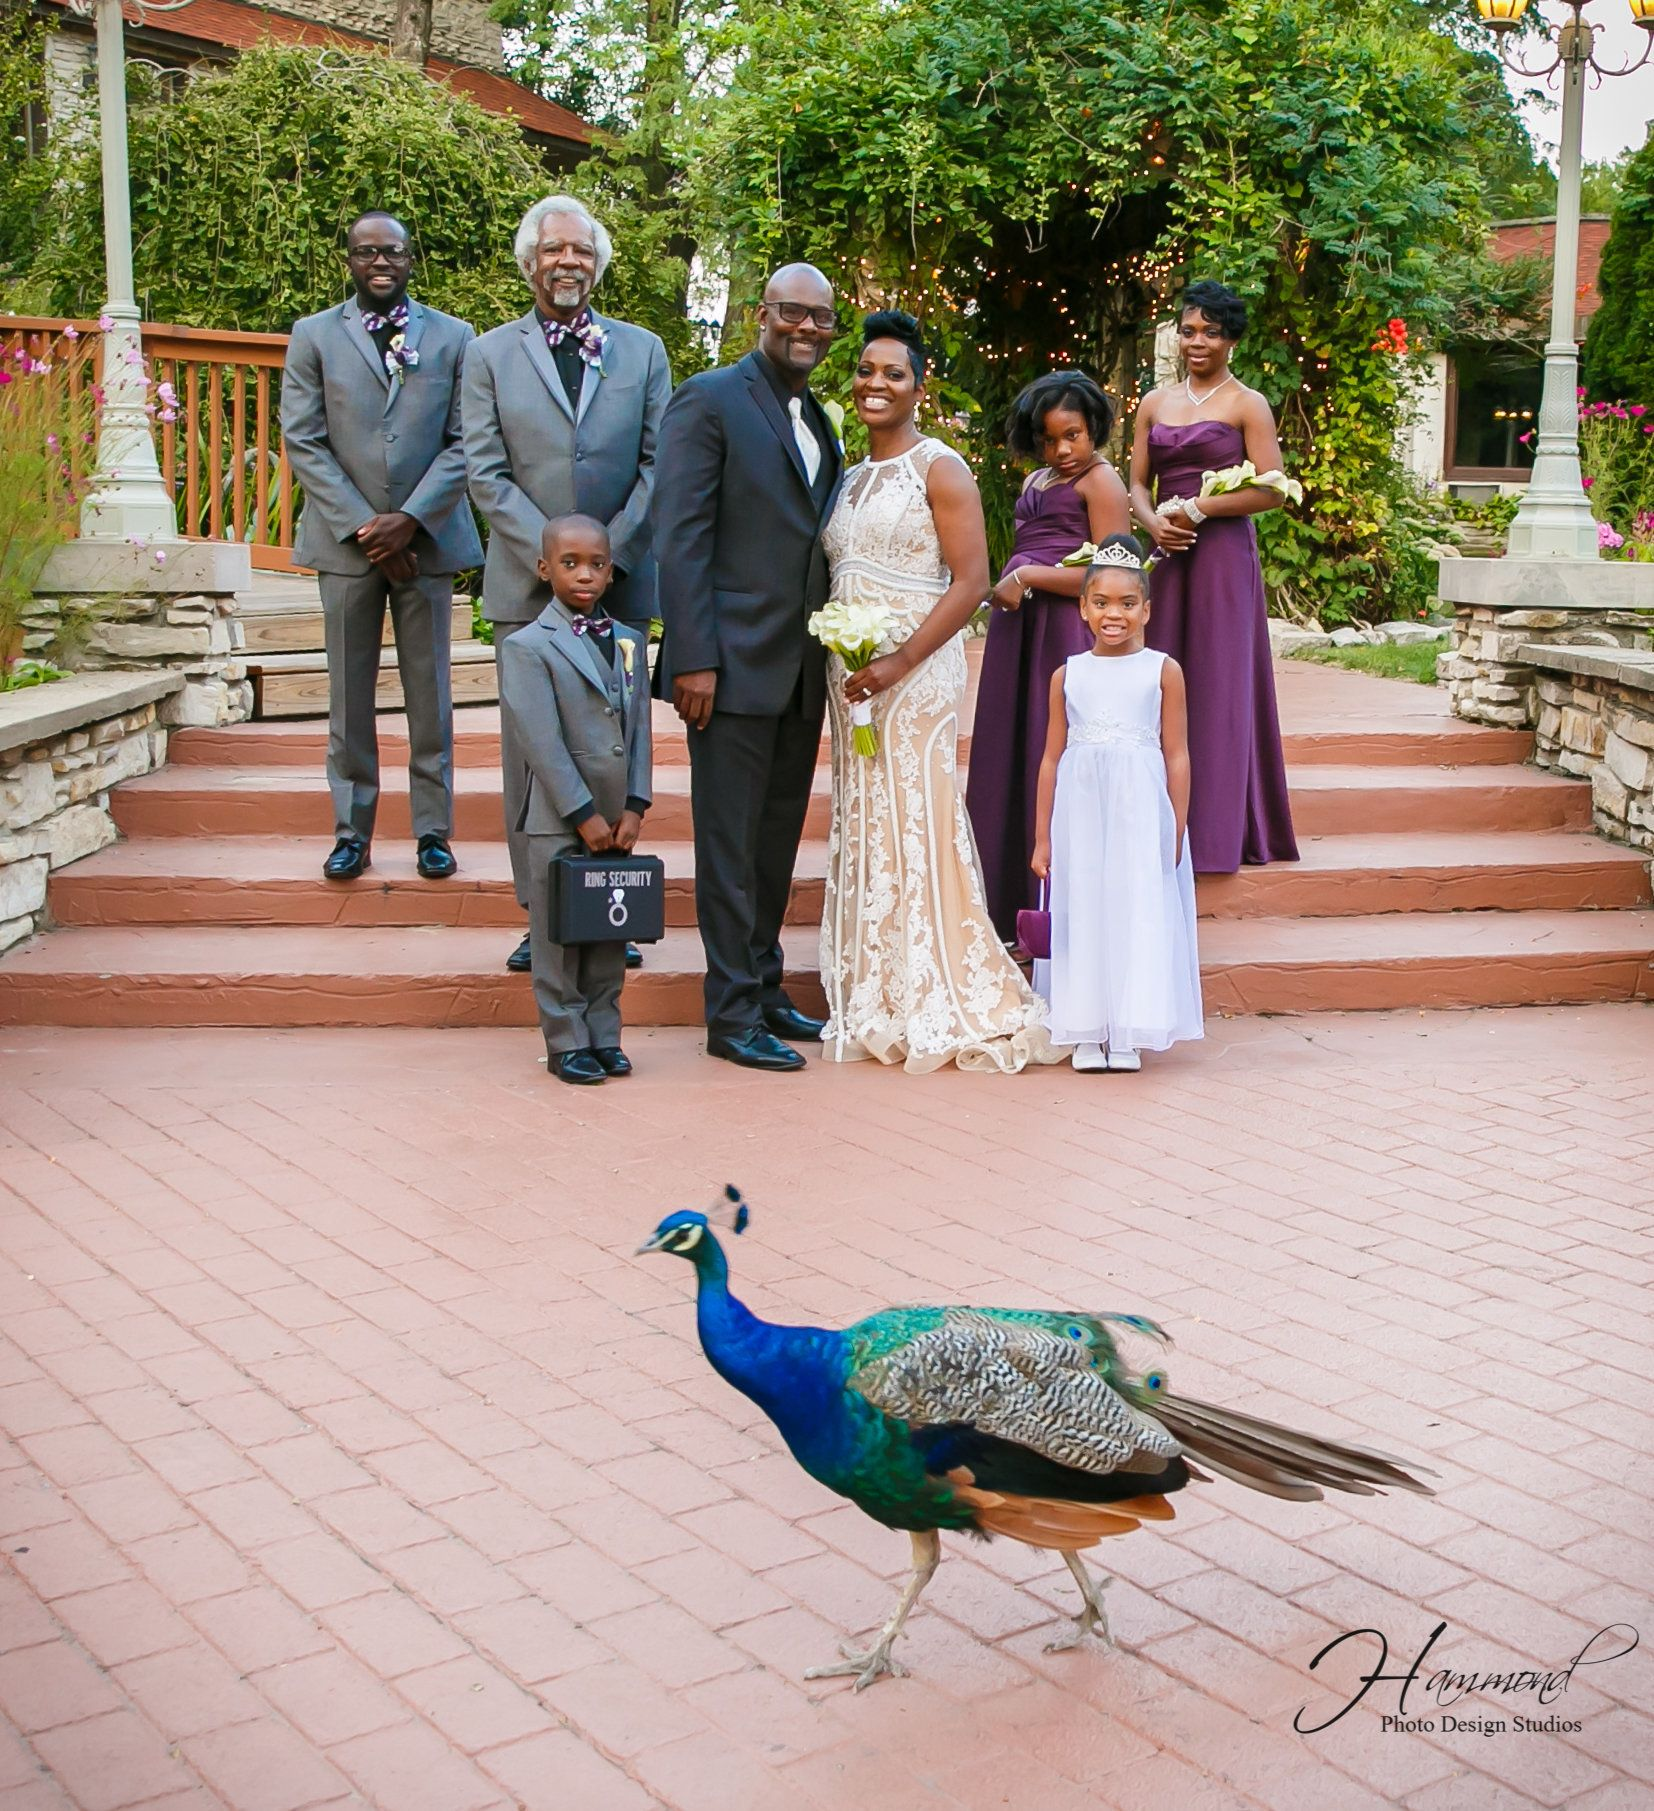 The wedding party included (from left to right): Denzel Goins (the bride's son), Albert Conway (the groom's father and